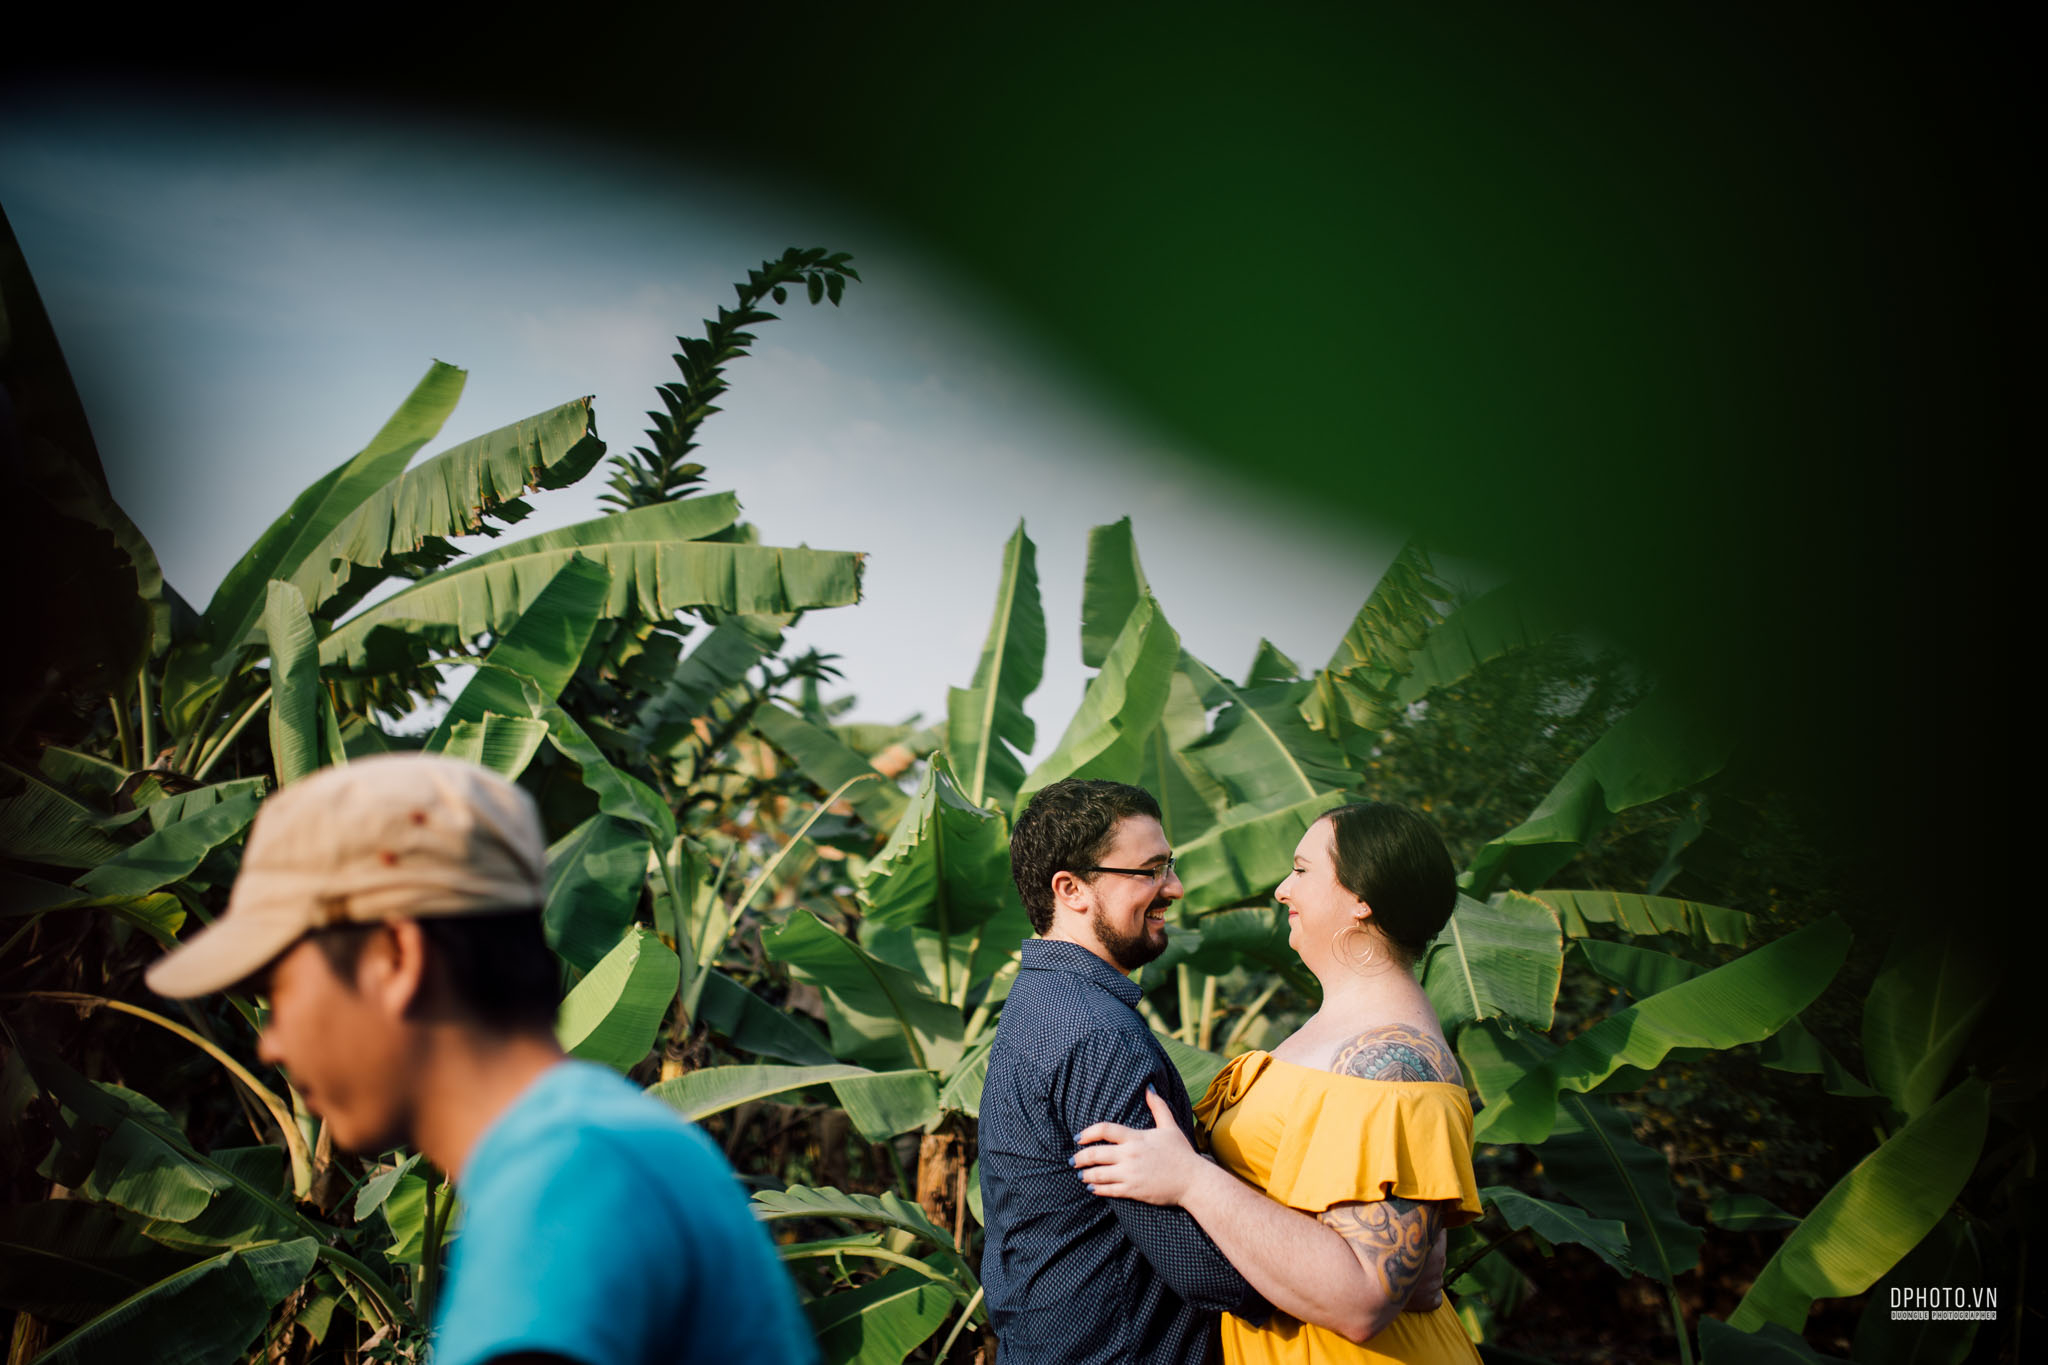 engagement_photo_in_sai_gon_ho_chi_minh_viet_nam28